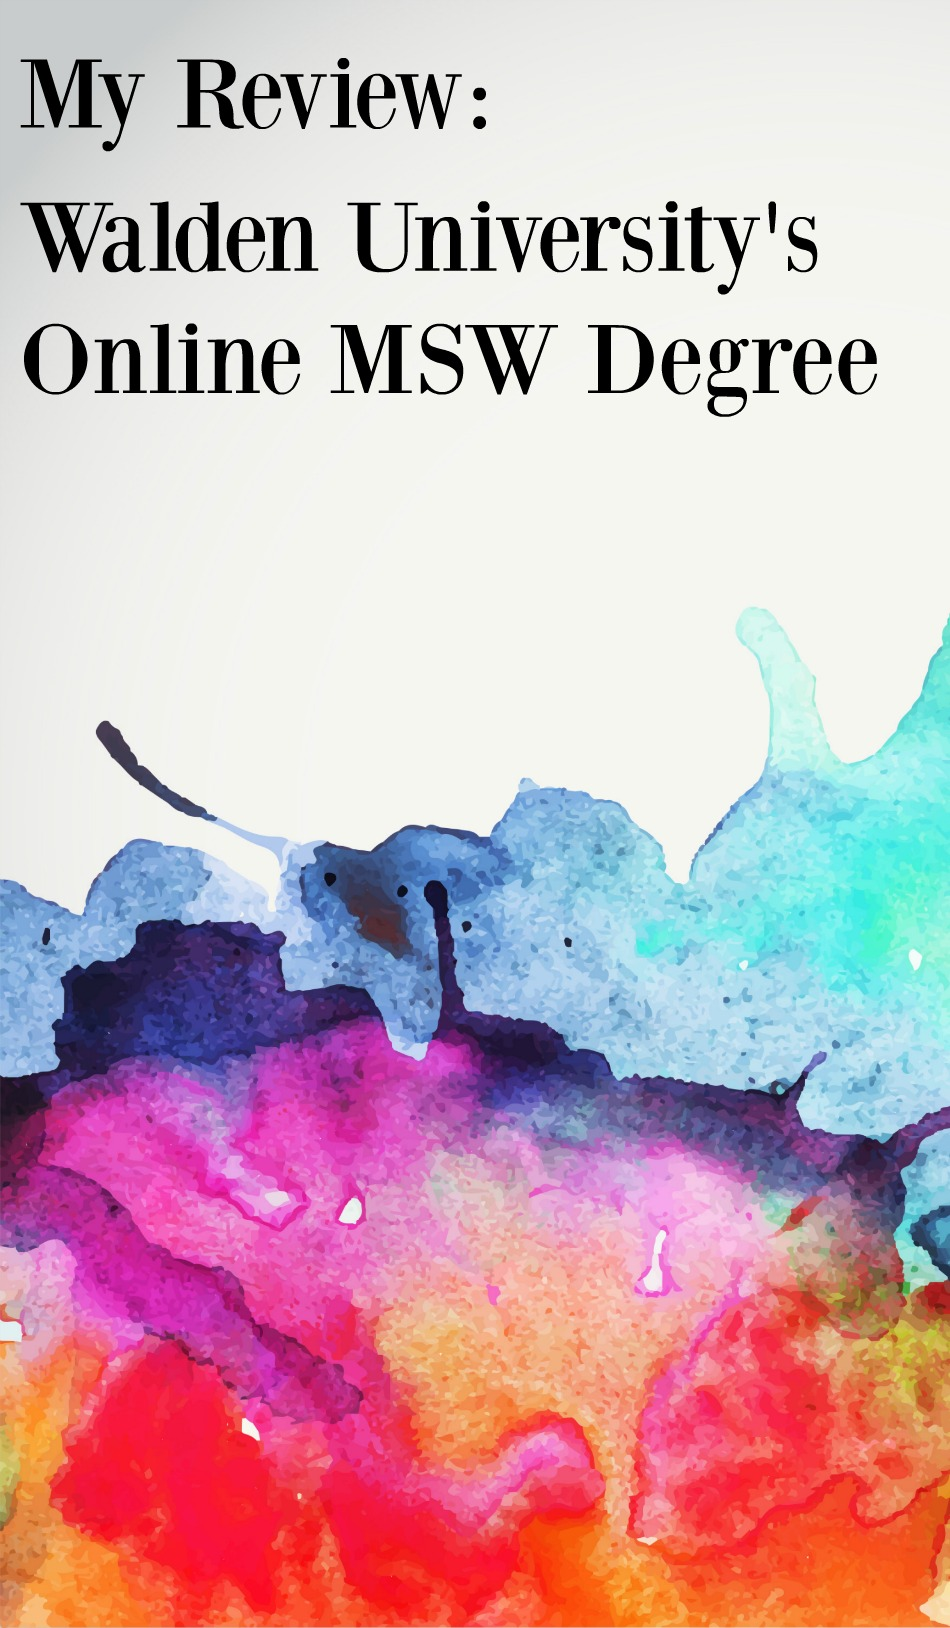 Online Masters Social Work Degree at Walden University